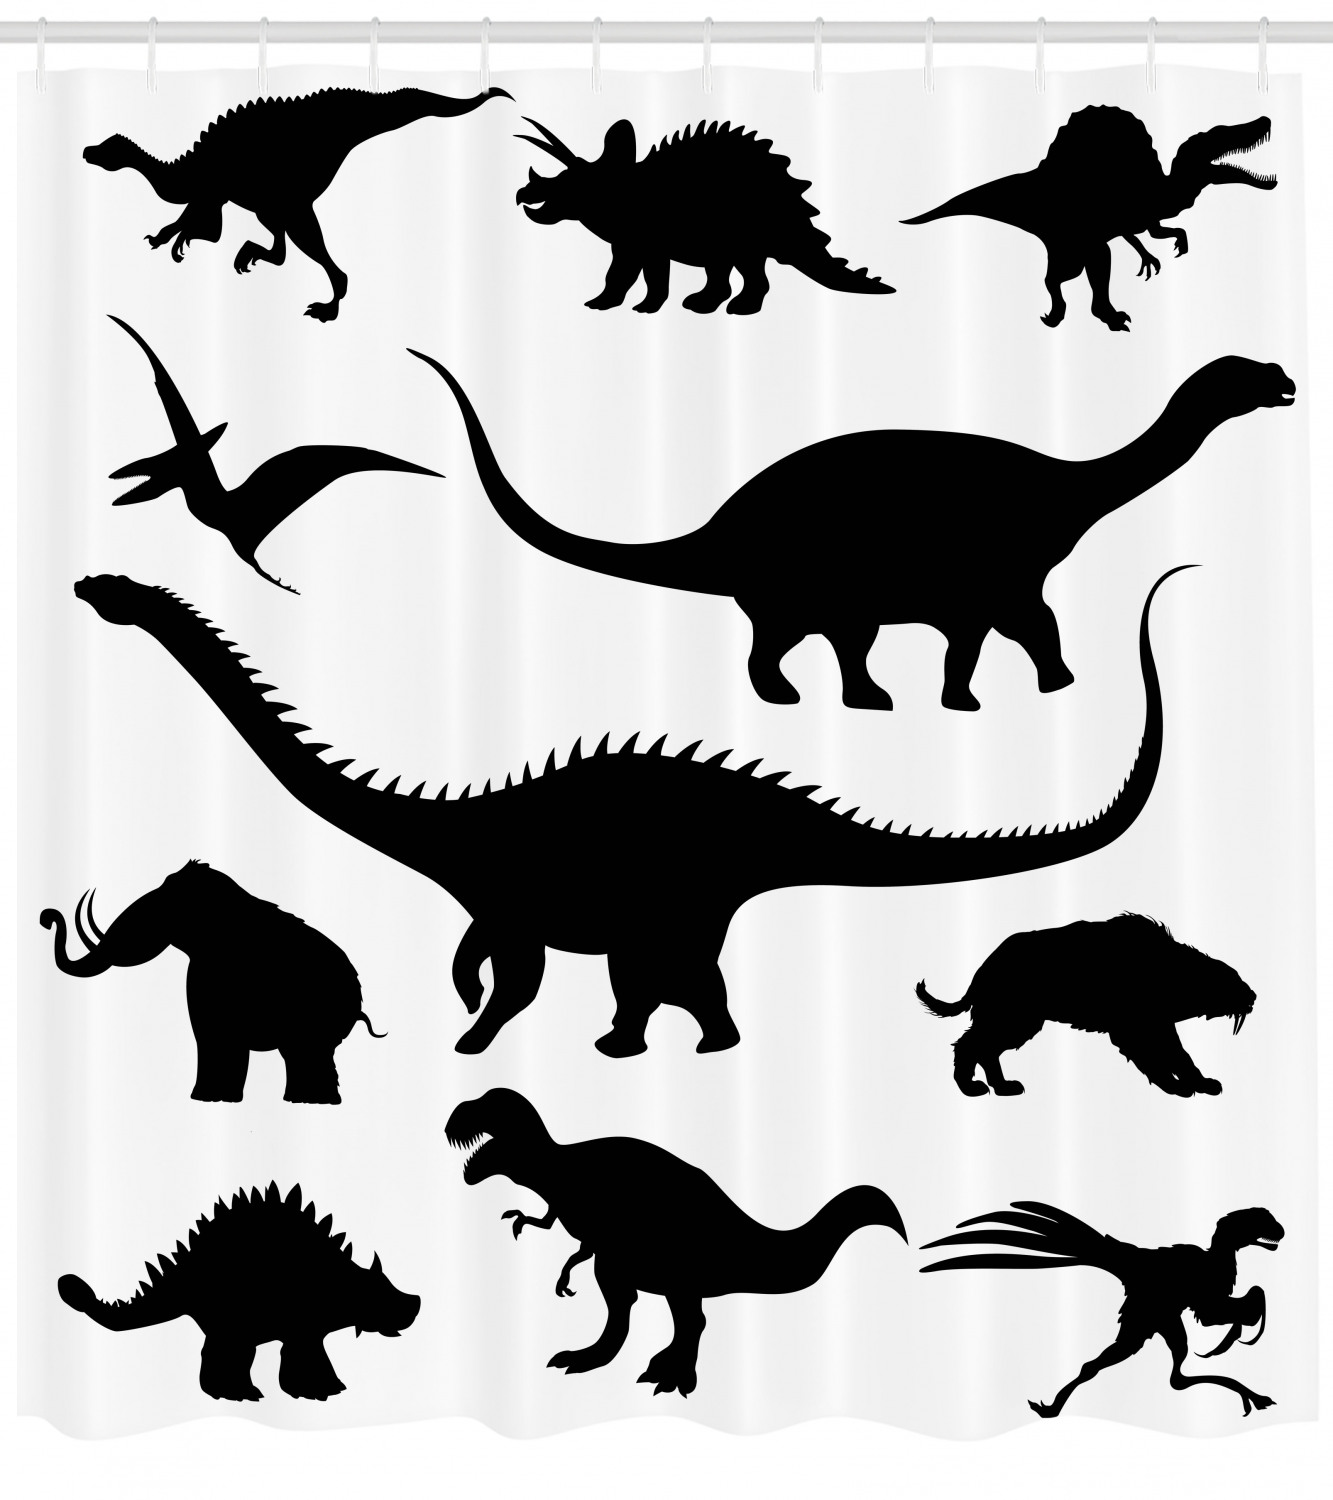 Dinosaur Shower Curtain Various Black Dino Silhouettes Jurassic Evolution Extinction Predator Animals Fabric Bathroom Set With Hooks Black White